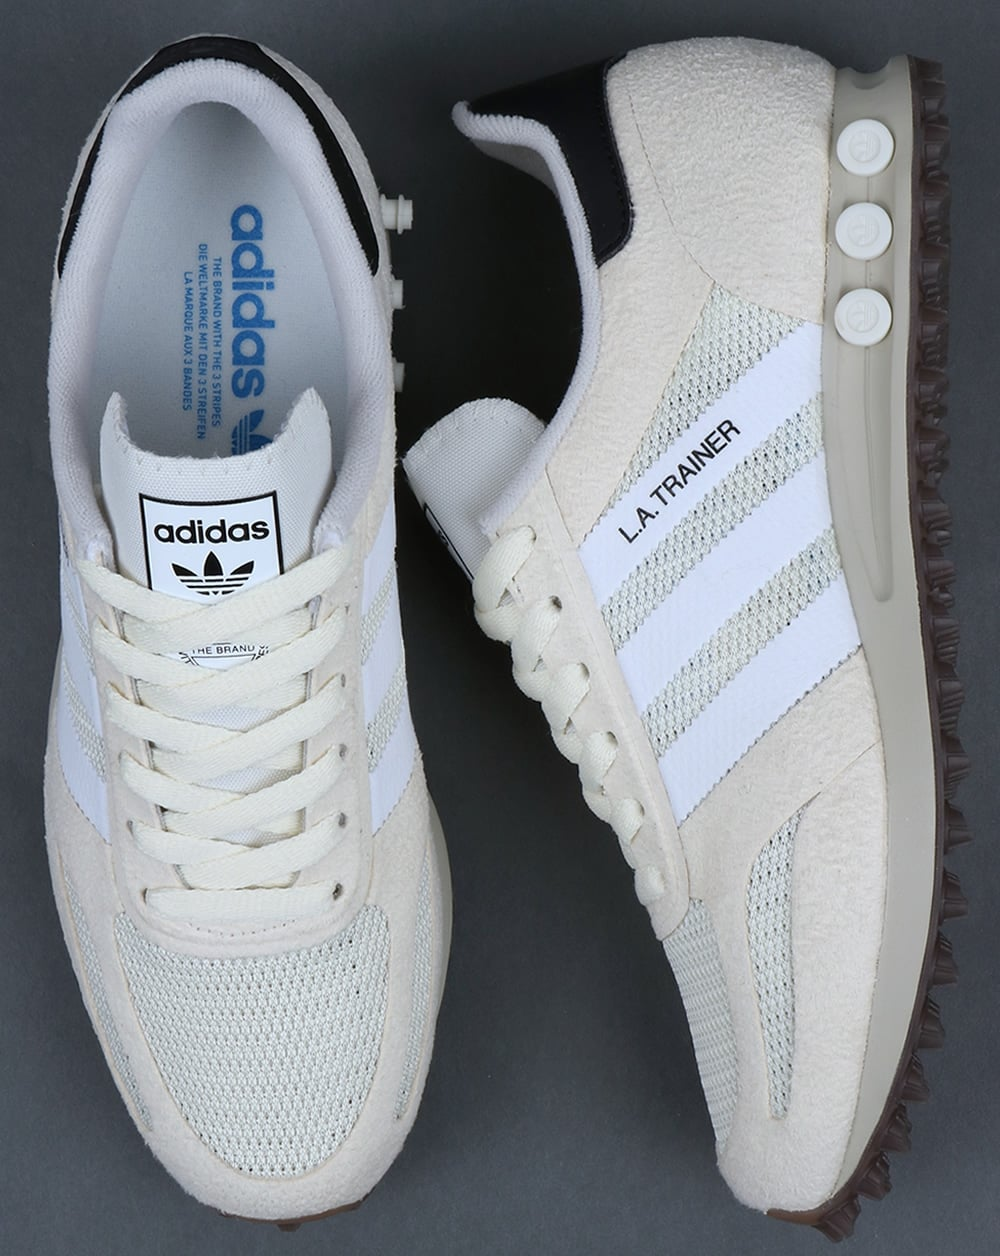 low priced 8c1cc eb897 adidas Trainers Adidas La Trainer OG Trainers Off White White Gum